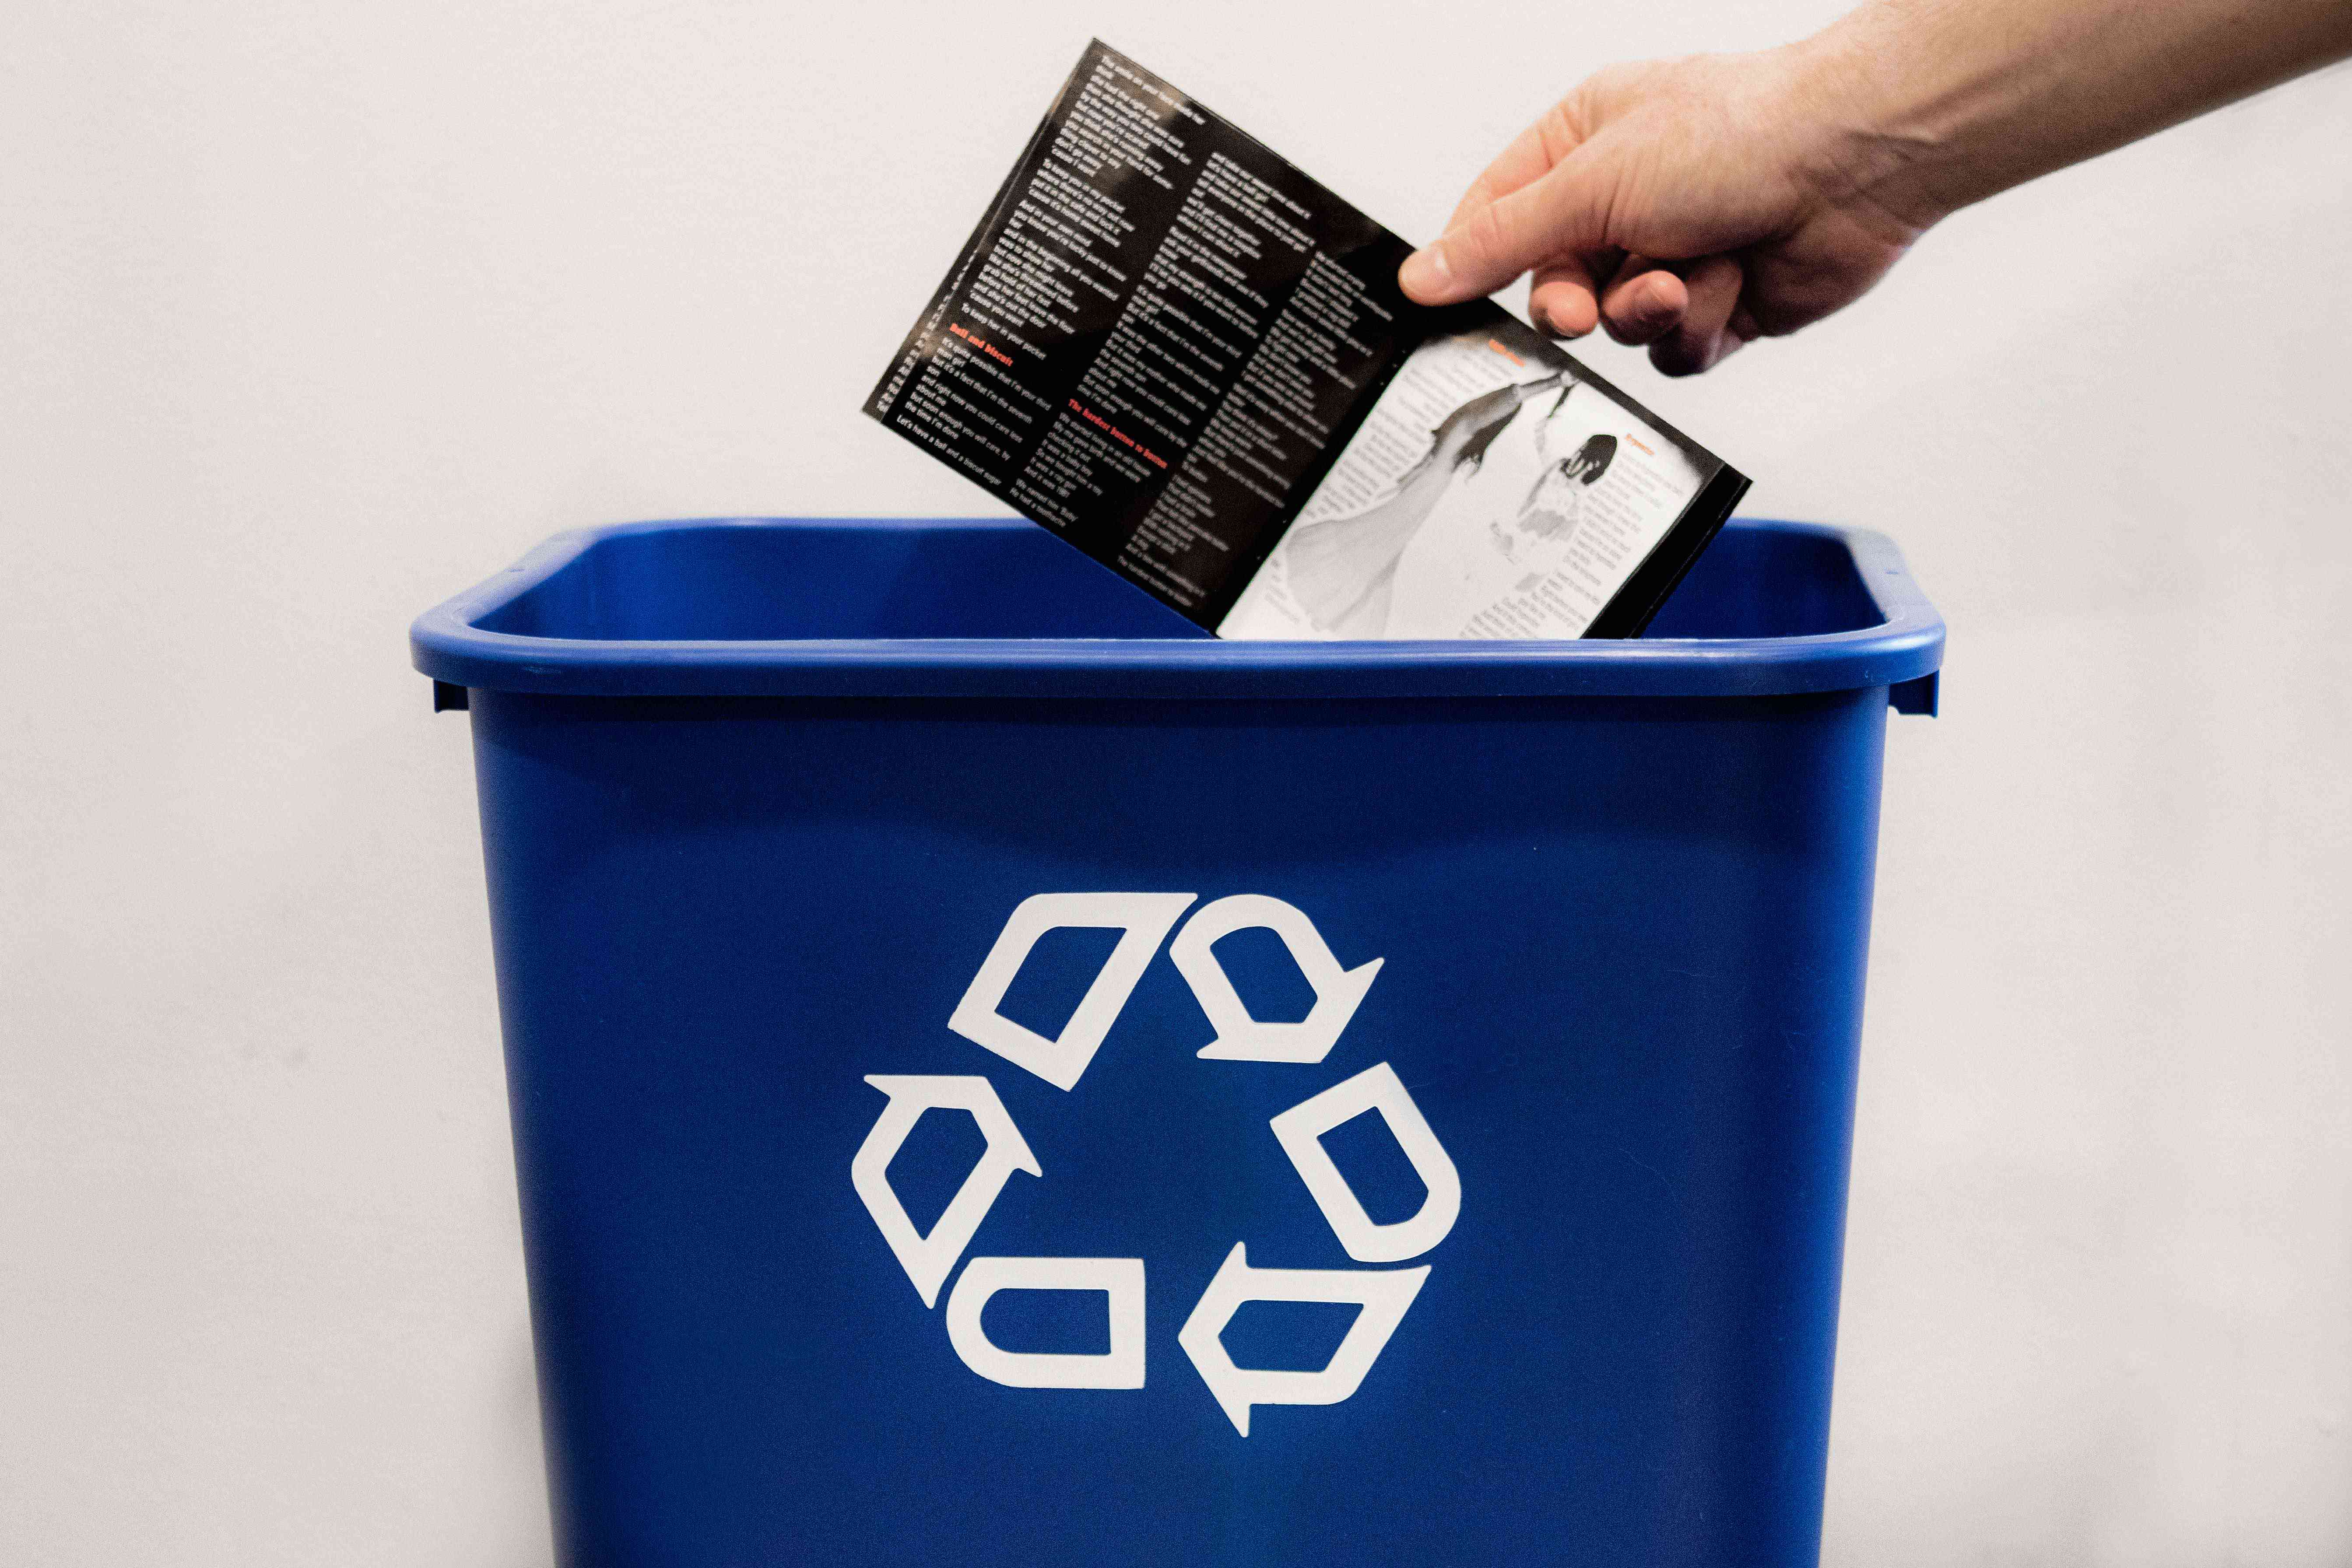 hand drops off paper liner off CD case into blue recycling bin